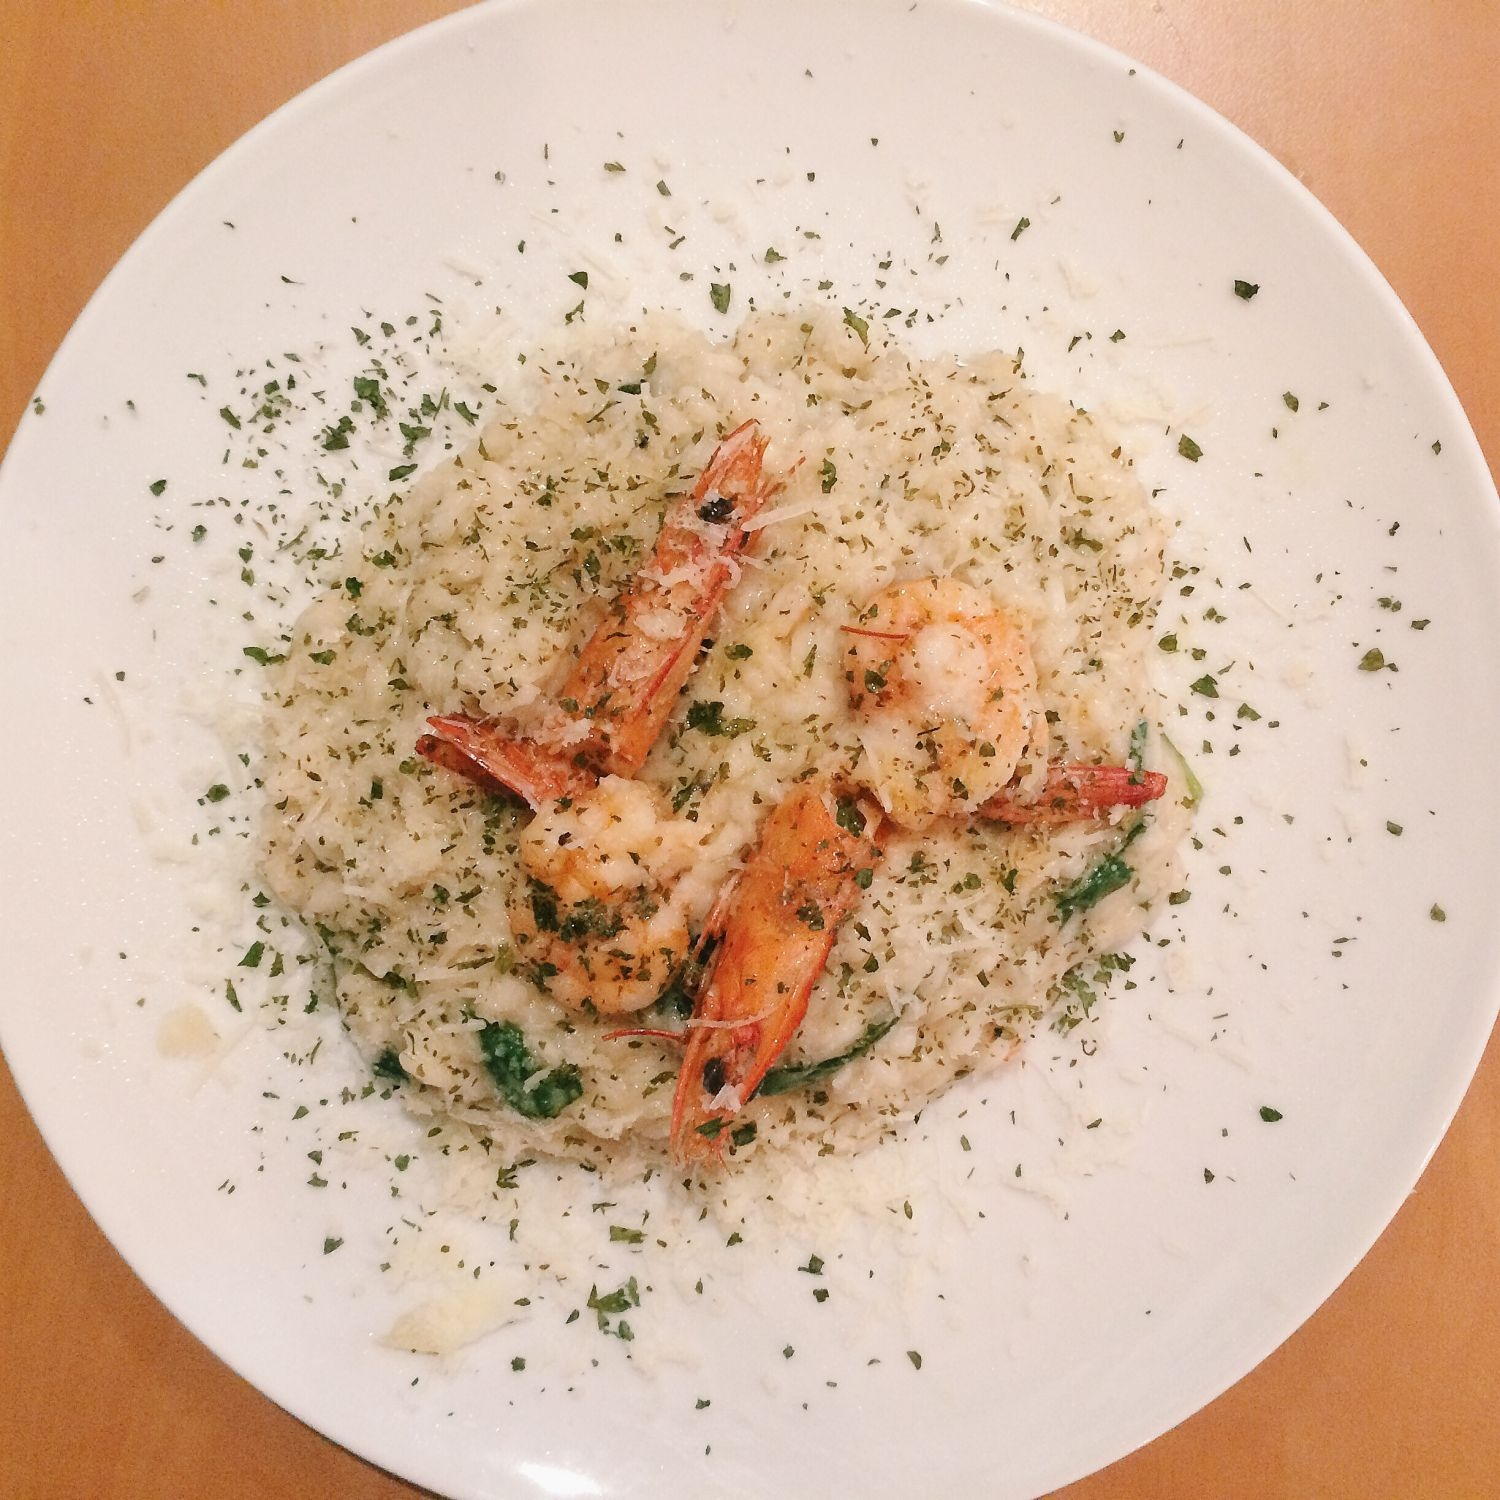 Prawn Risotto - The Betterfield